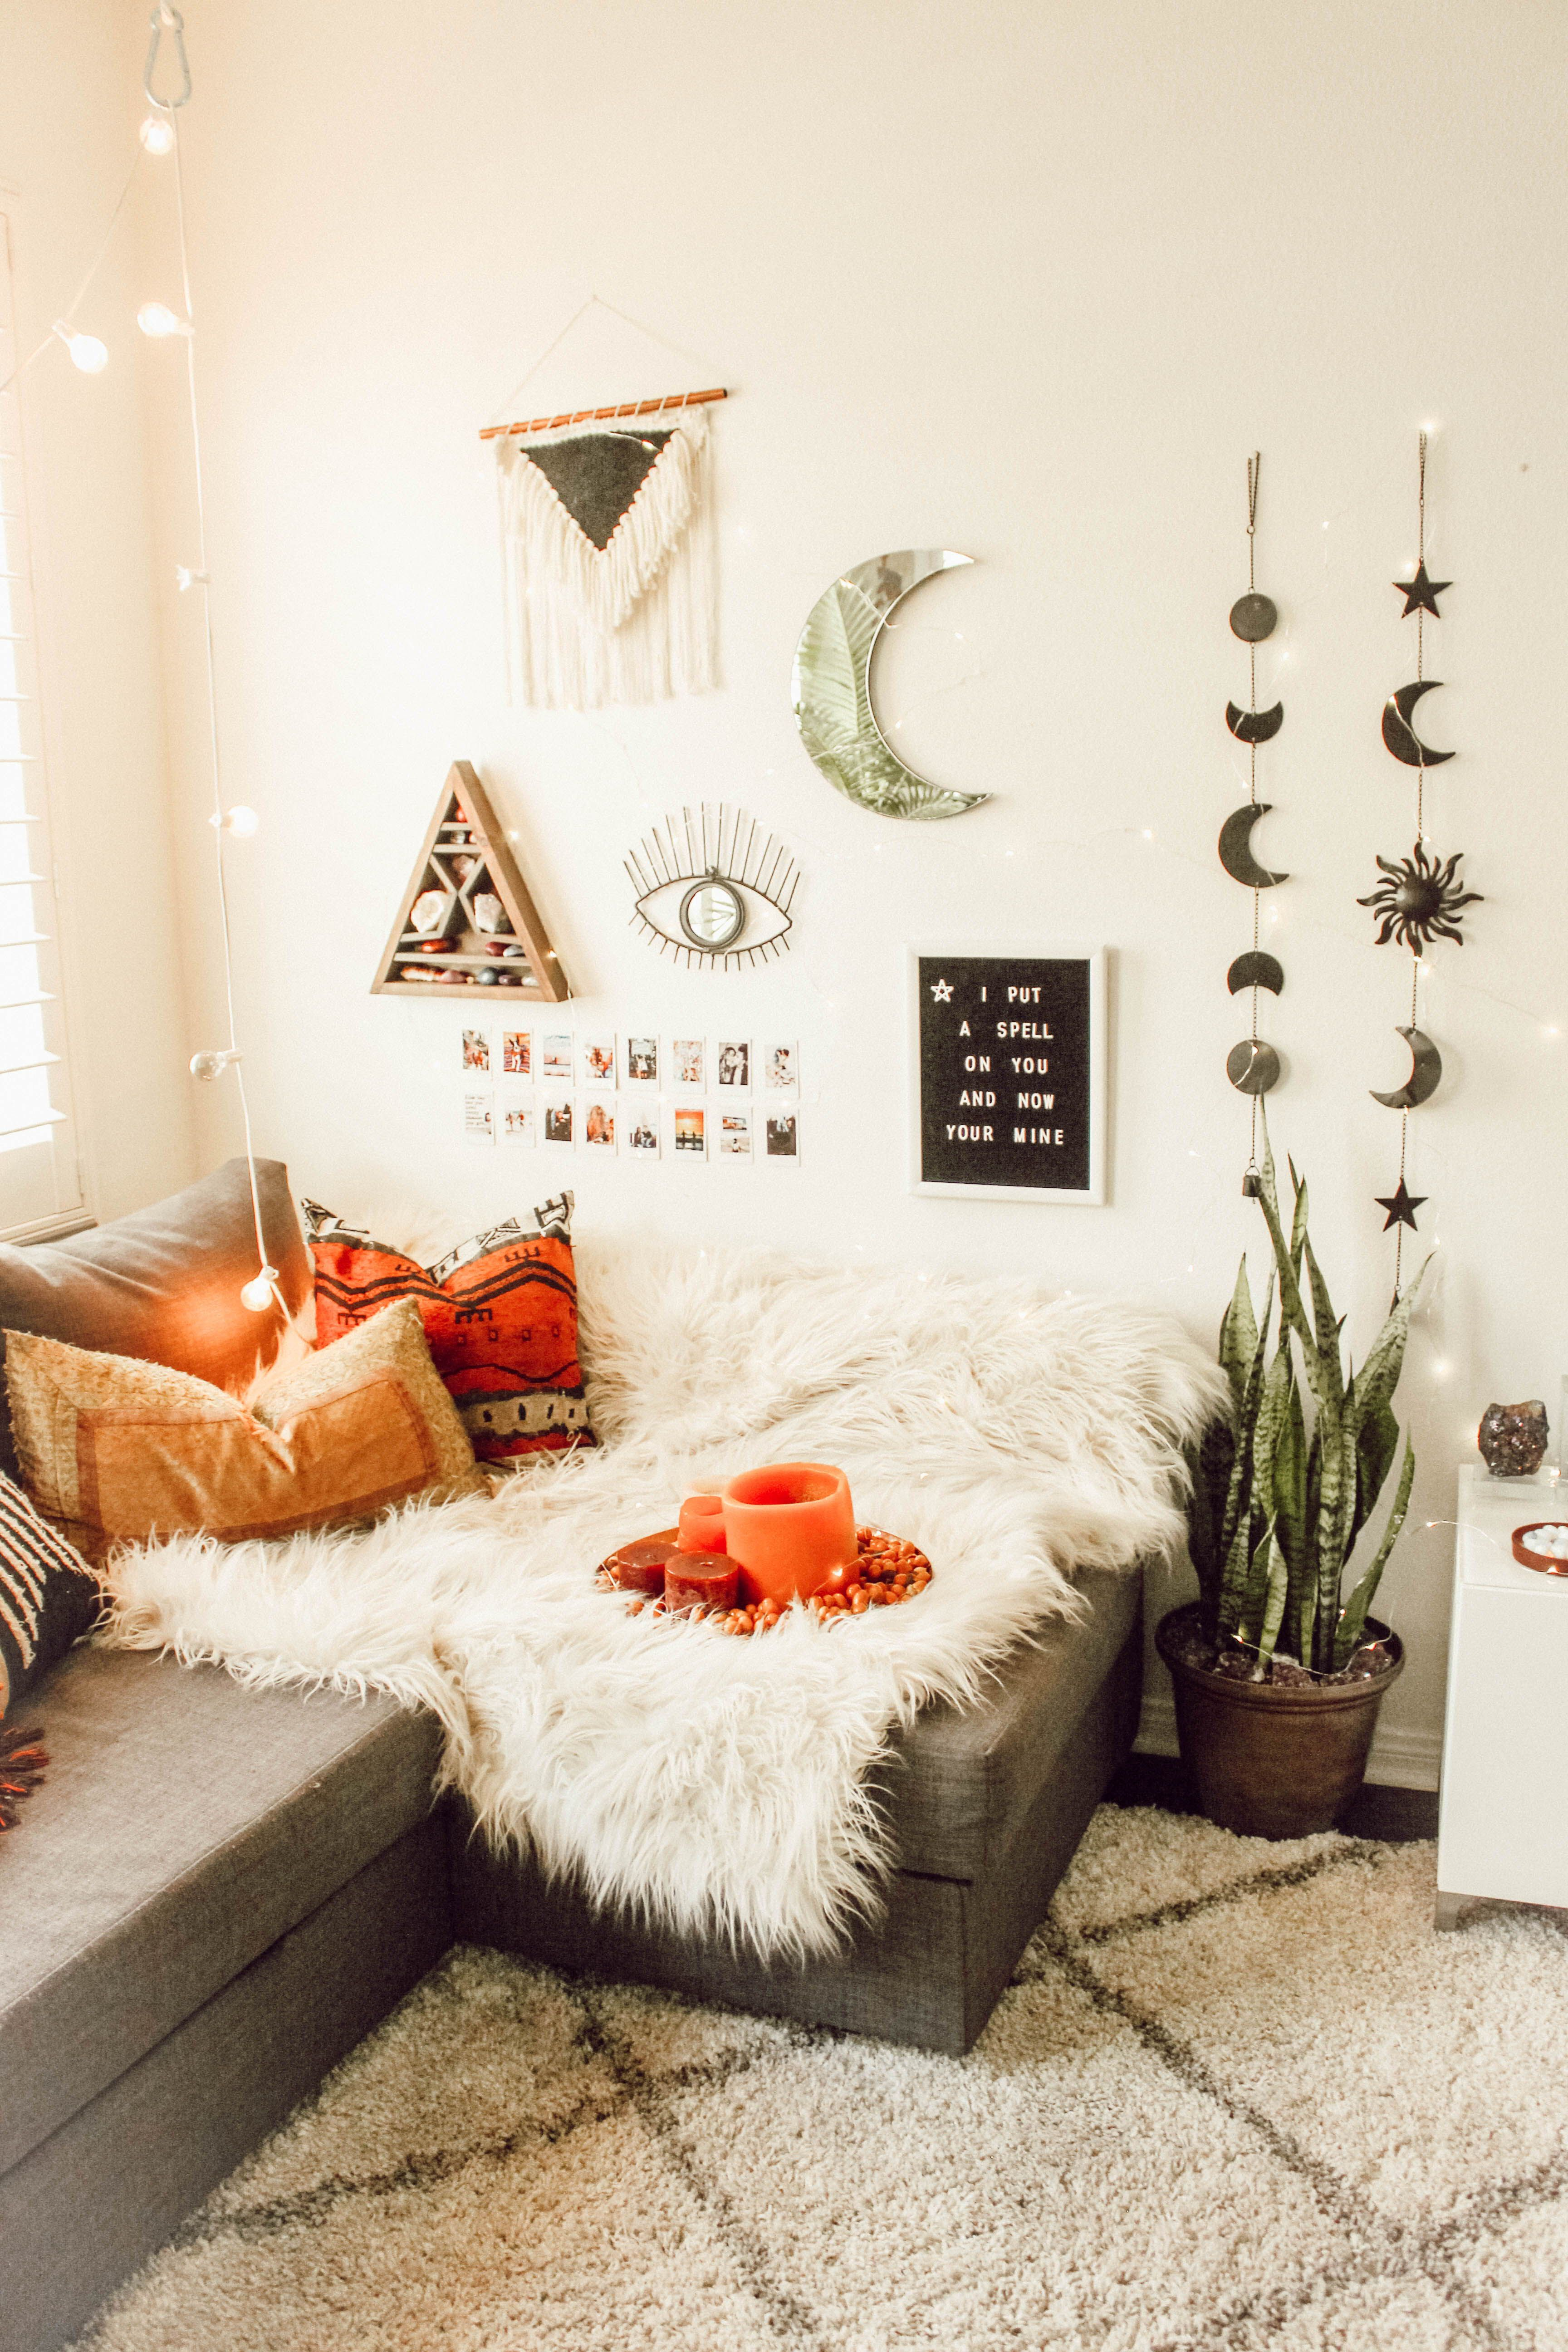 Corral Bedroom Clutter And Show Off Your Style 5 Instagram Trends To Try Room Inspiration Bedroom Redecorate Bedroom Bedroom Makeover